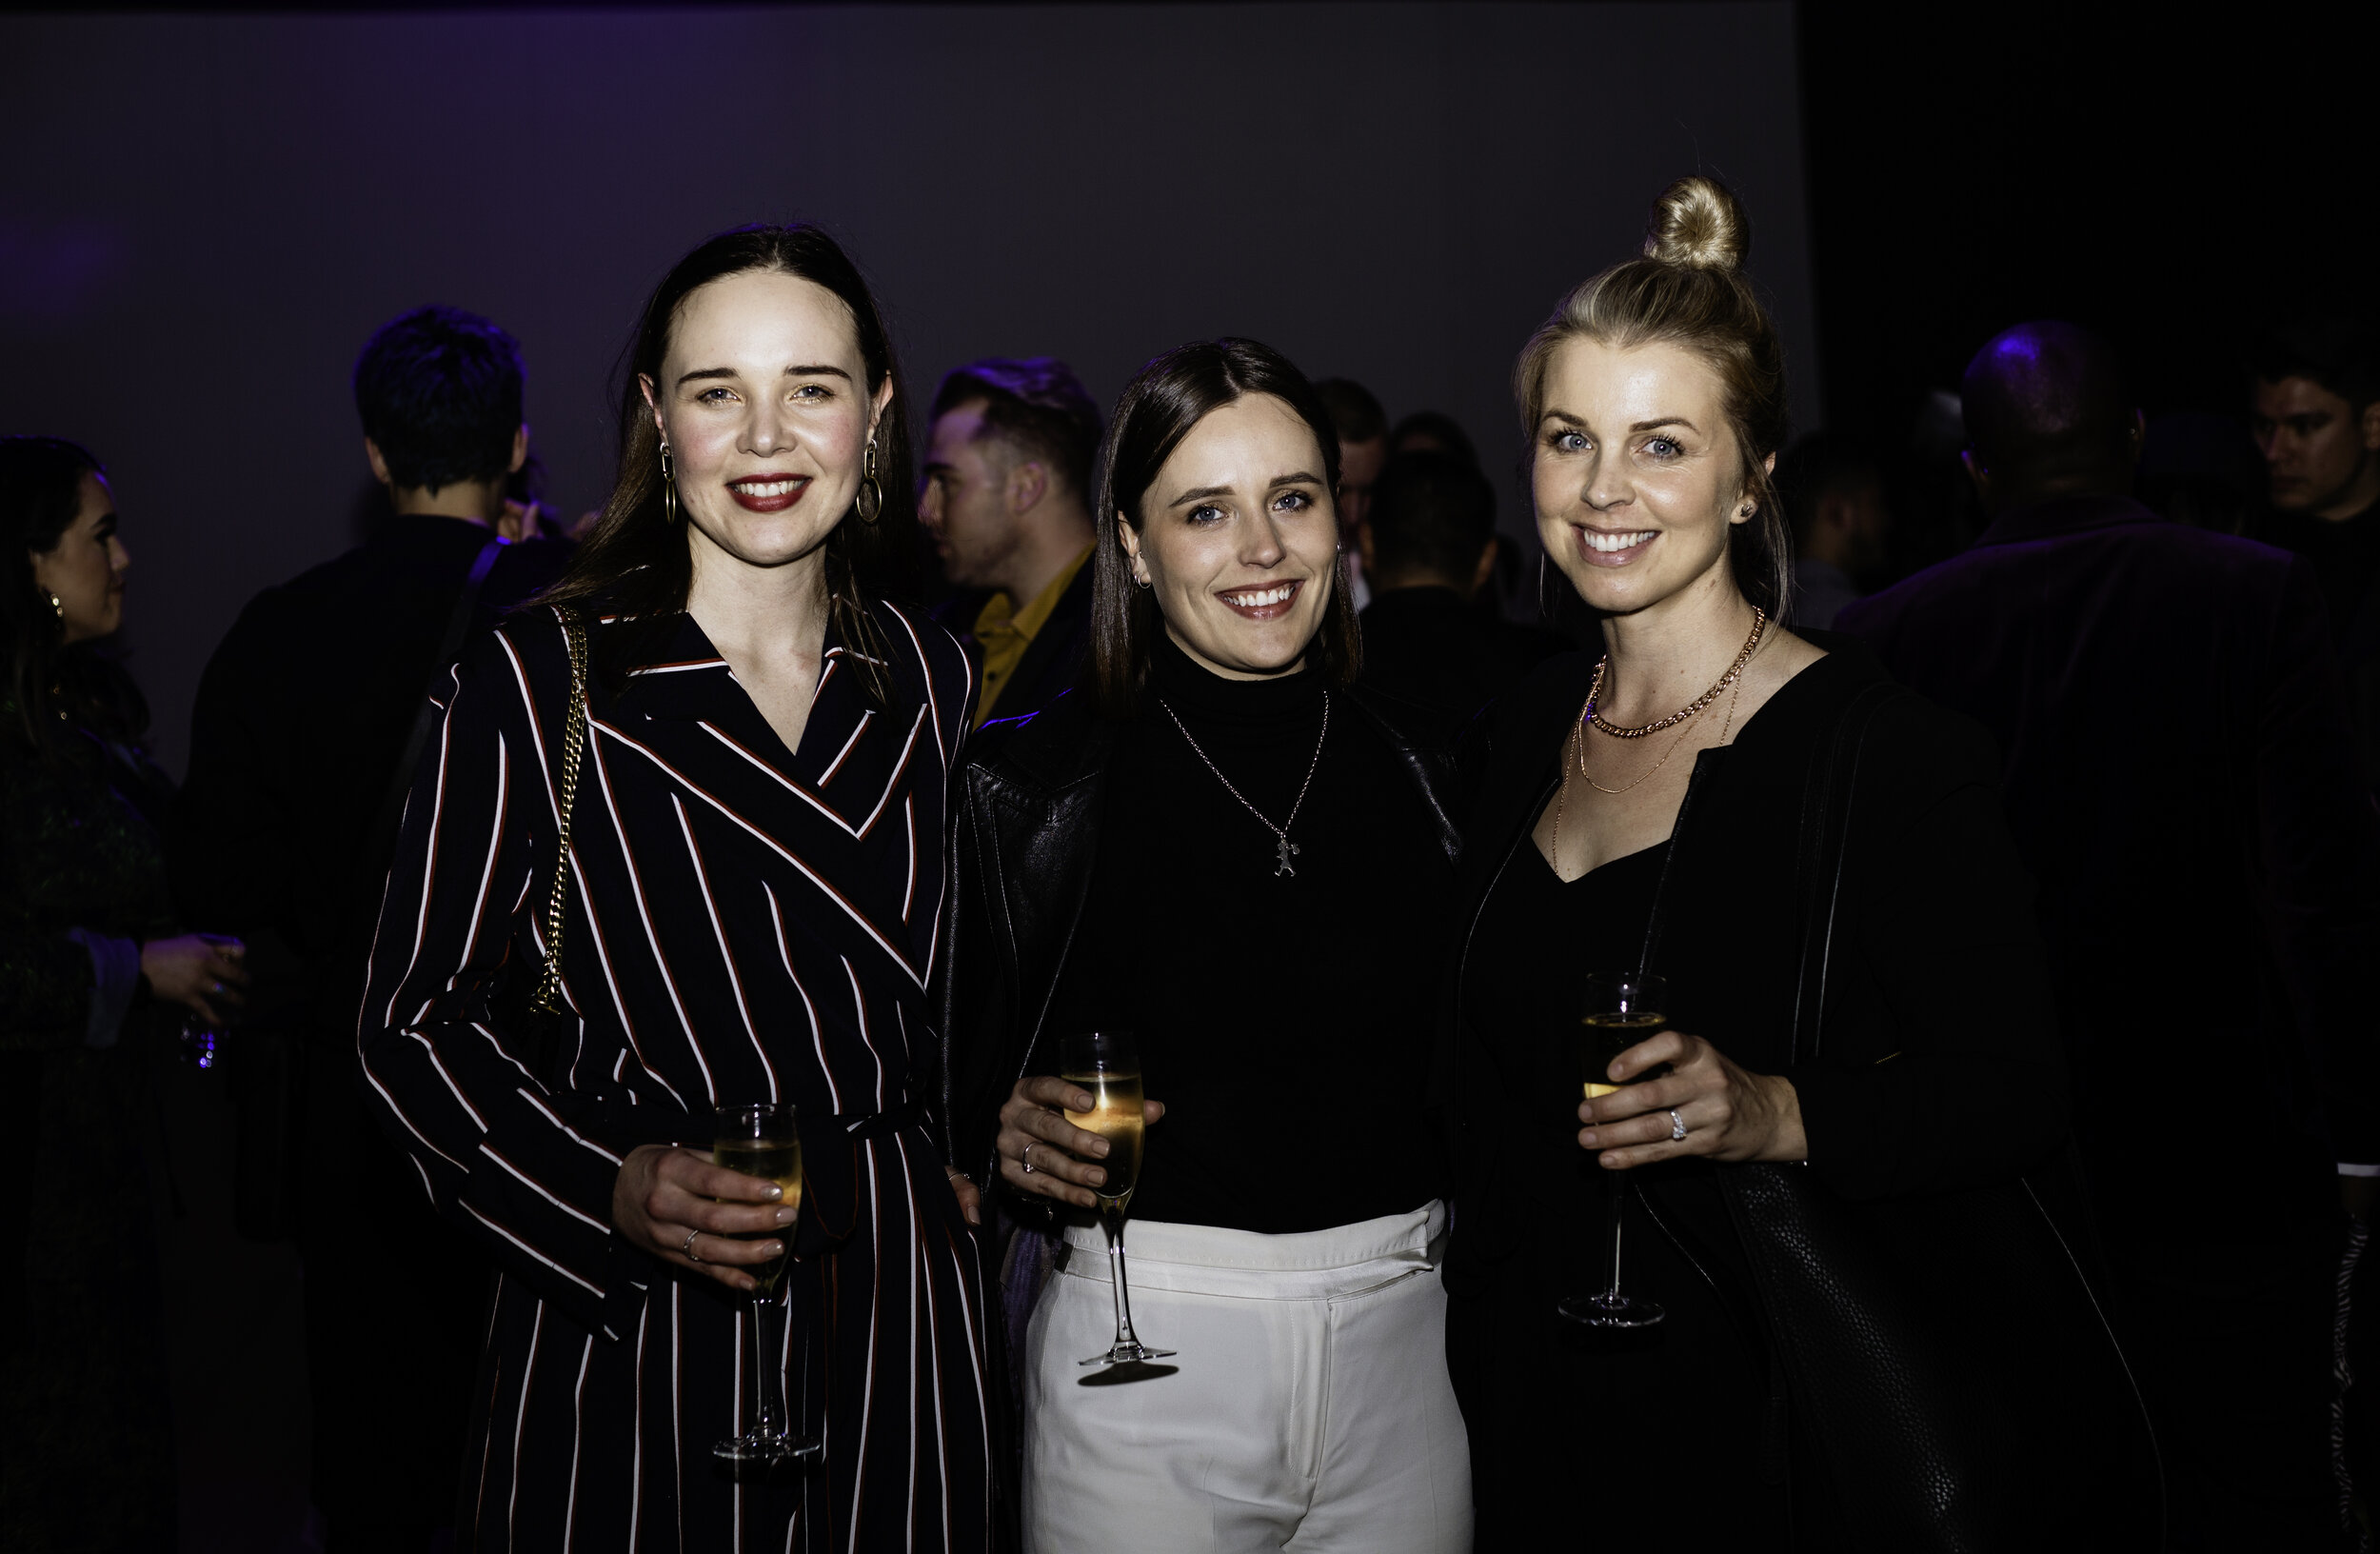 BrookeWaterson_Other_OfficialParty8_2019PhotoComp.jpg